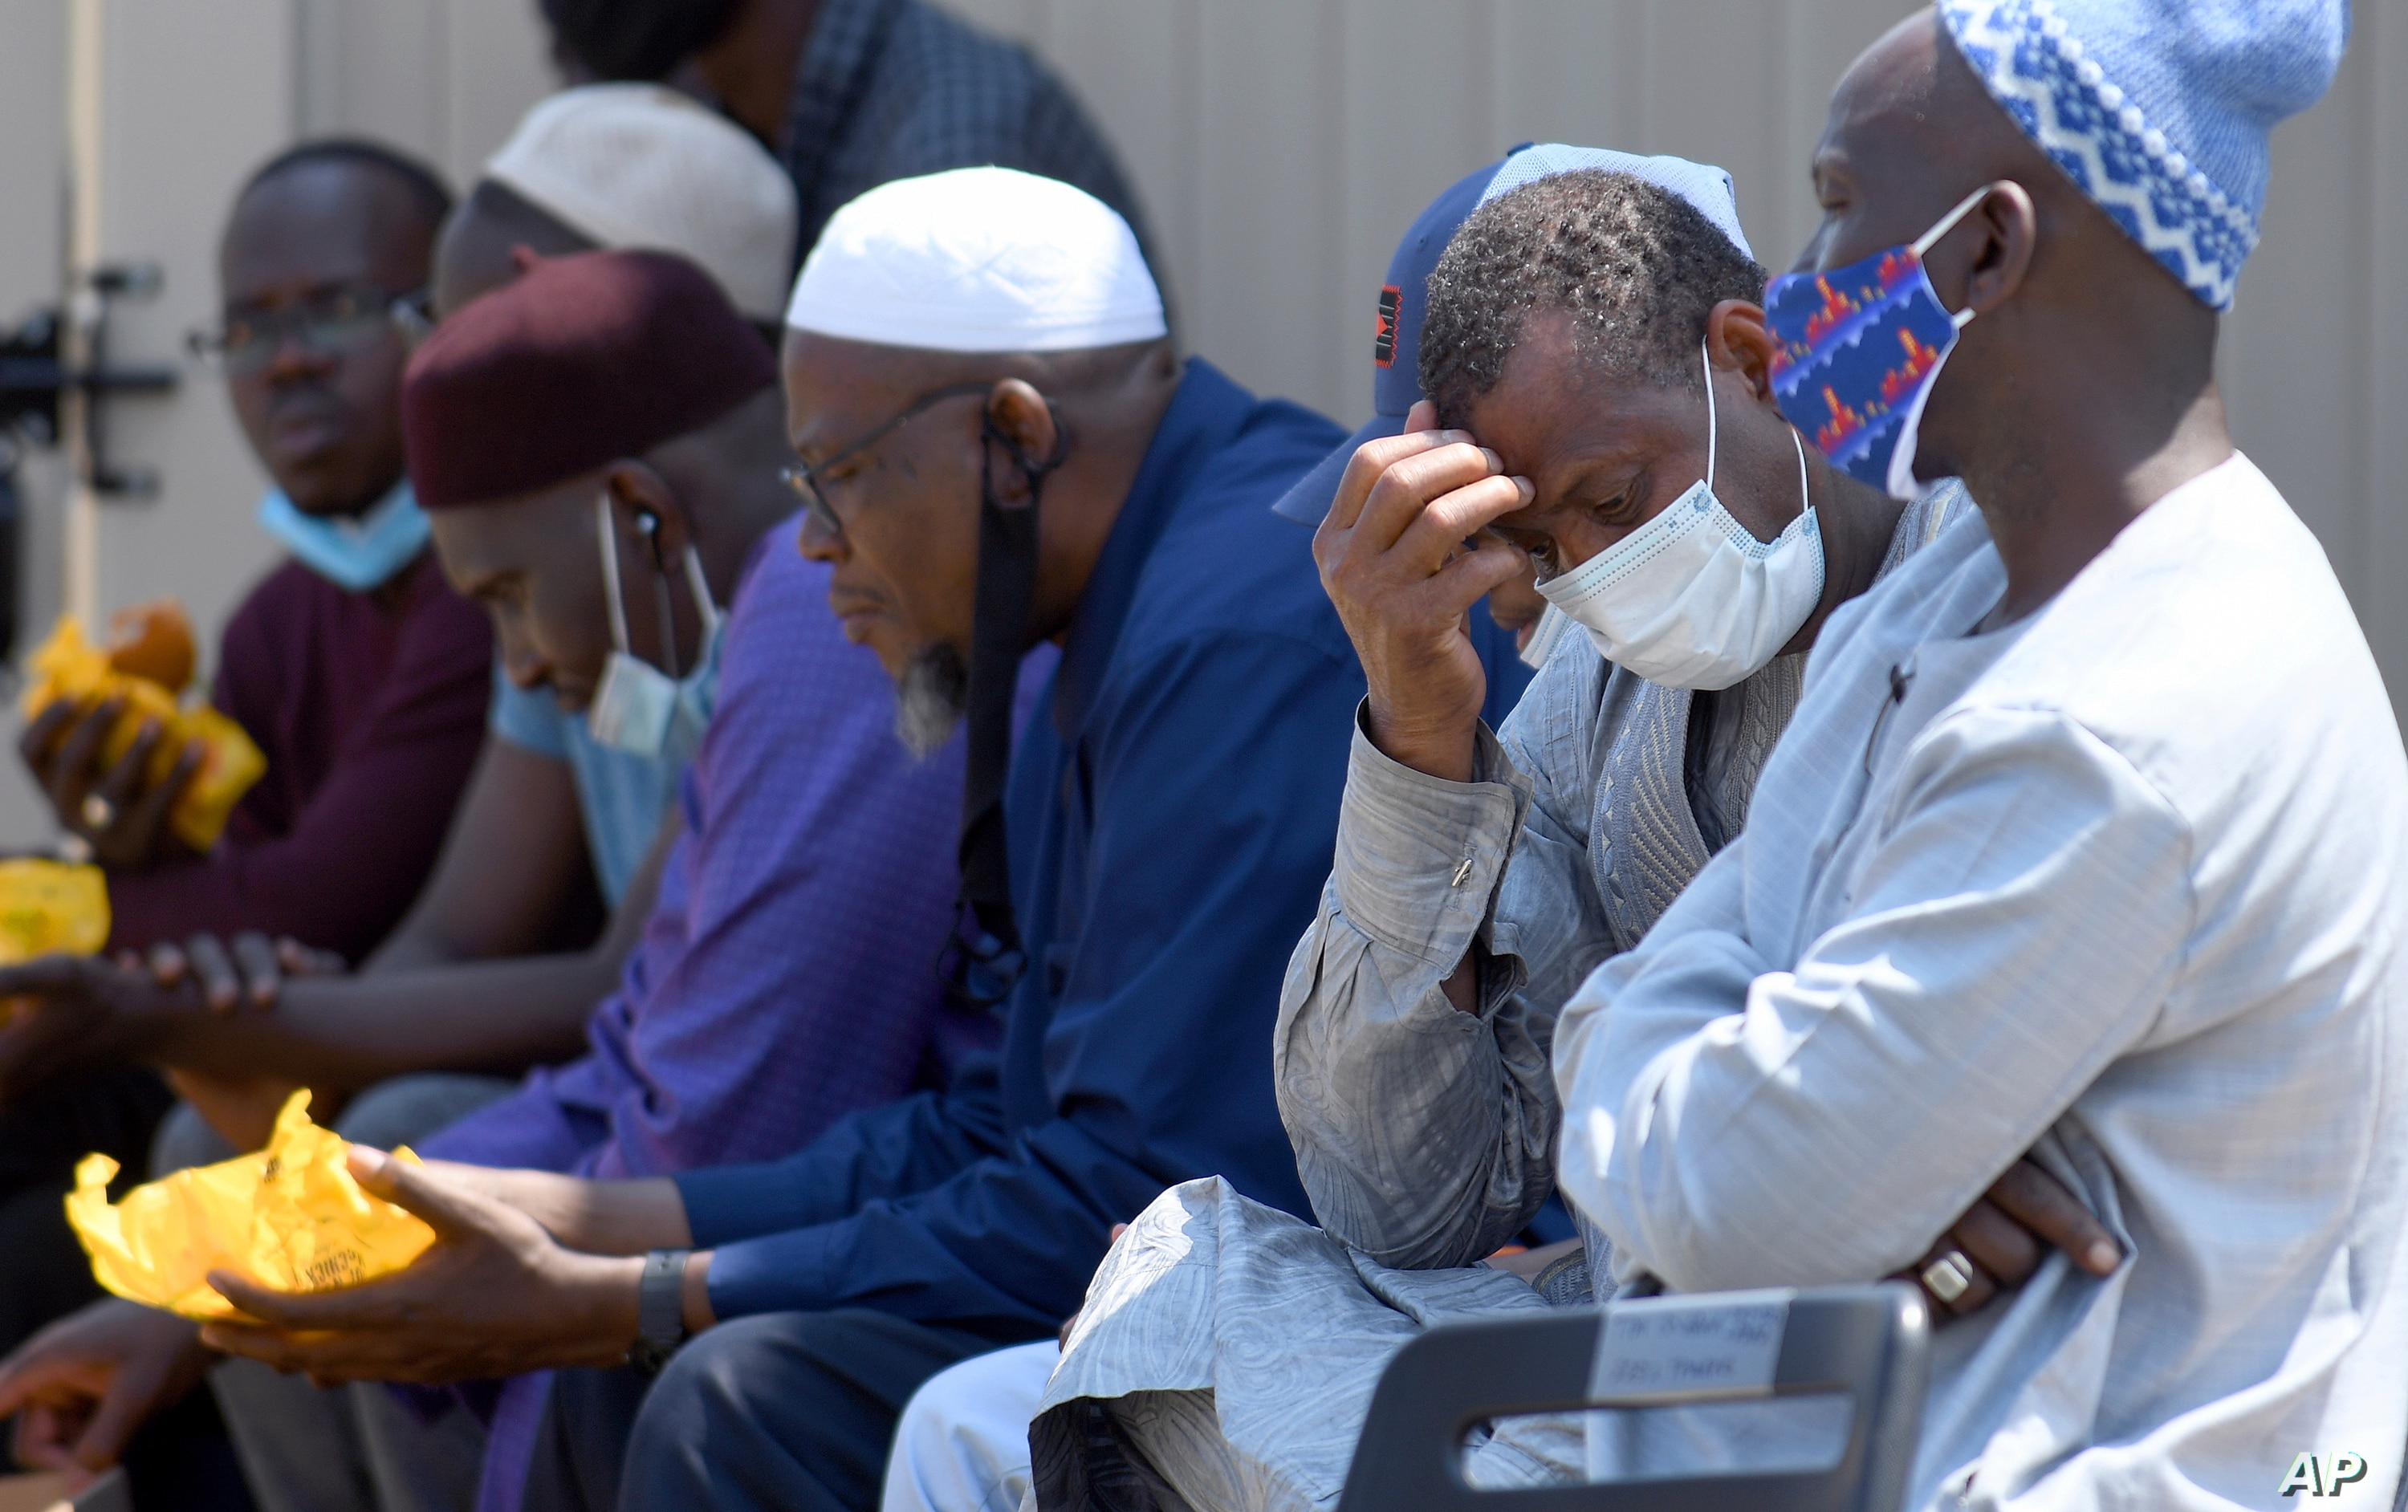 US Senegalese Community Mourns Denver Fire Victims in Suspected Arson Case  | Voice of America - English